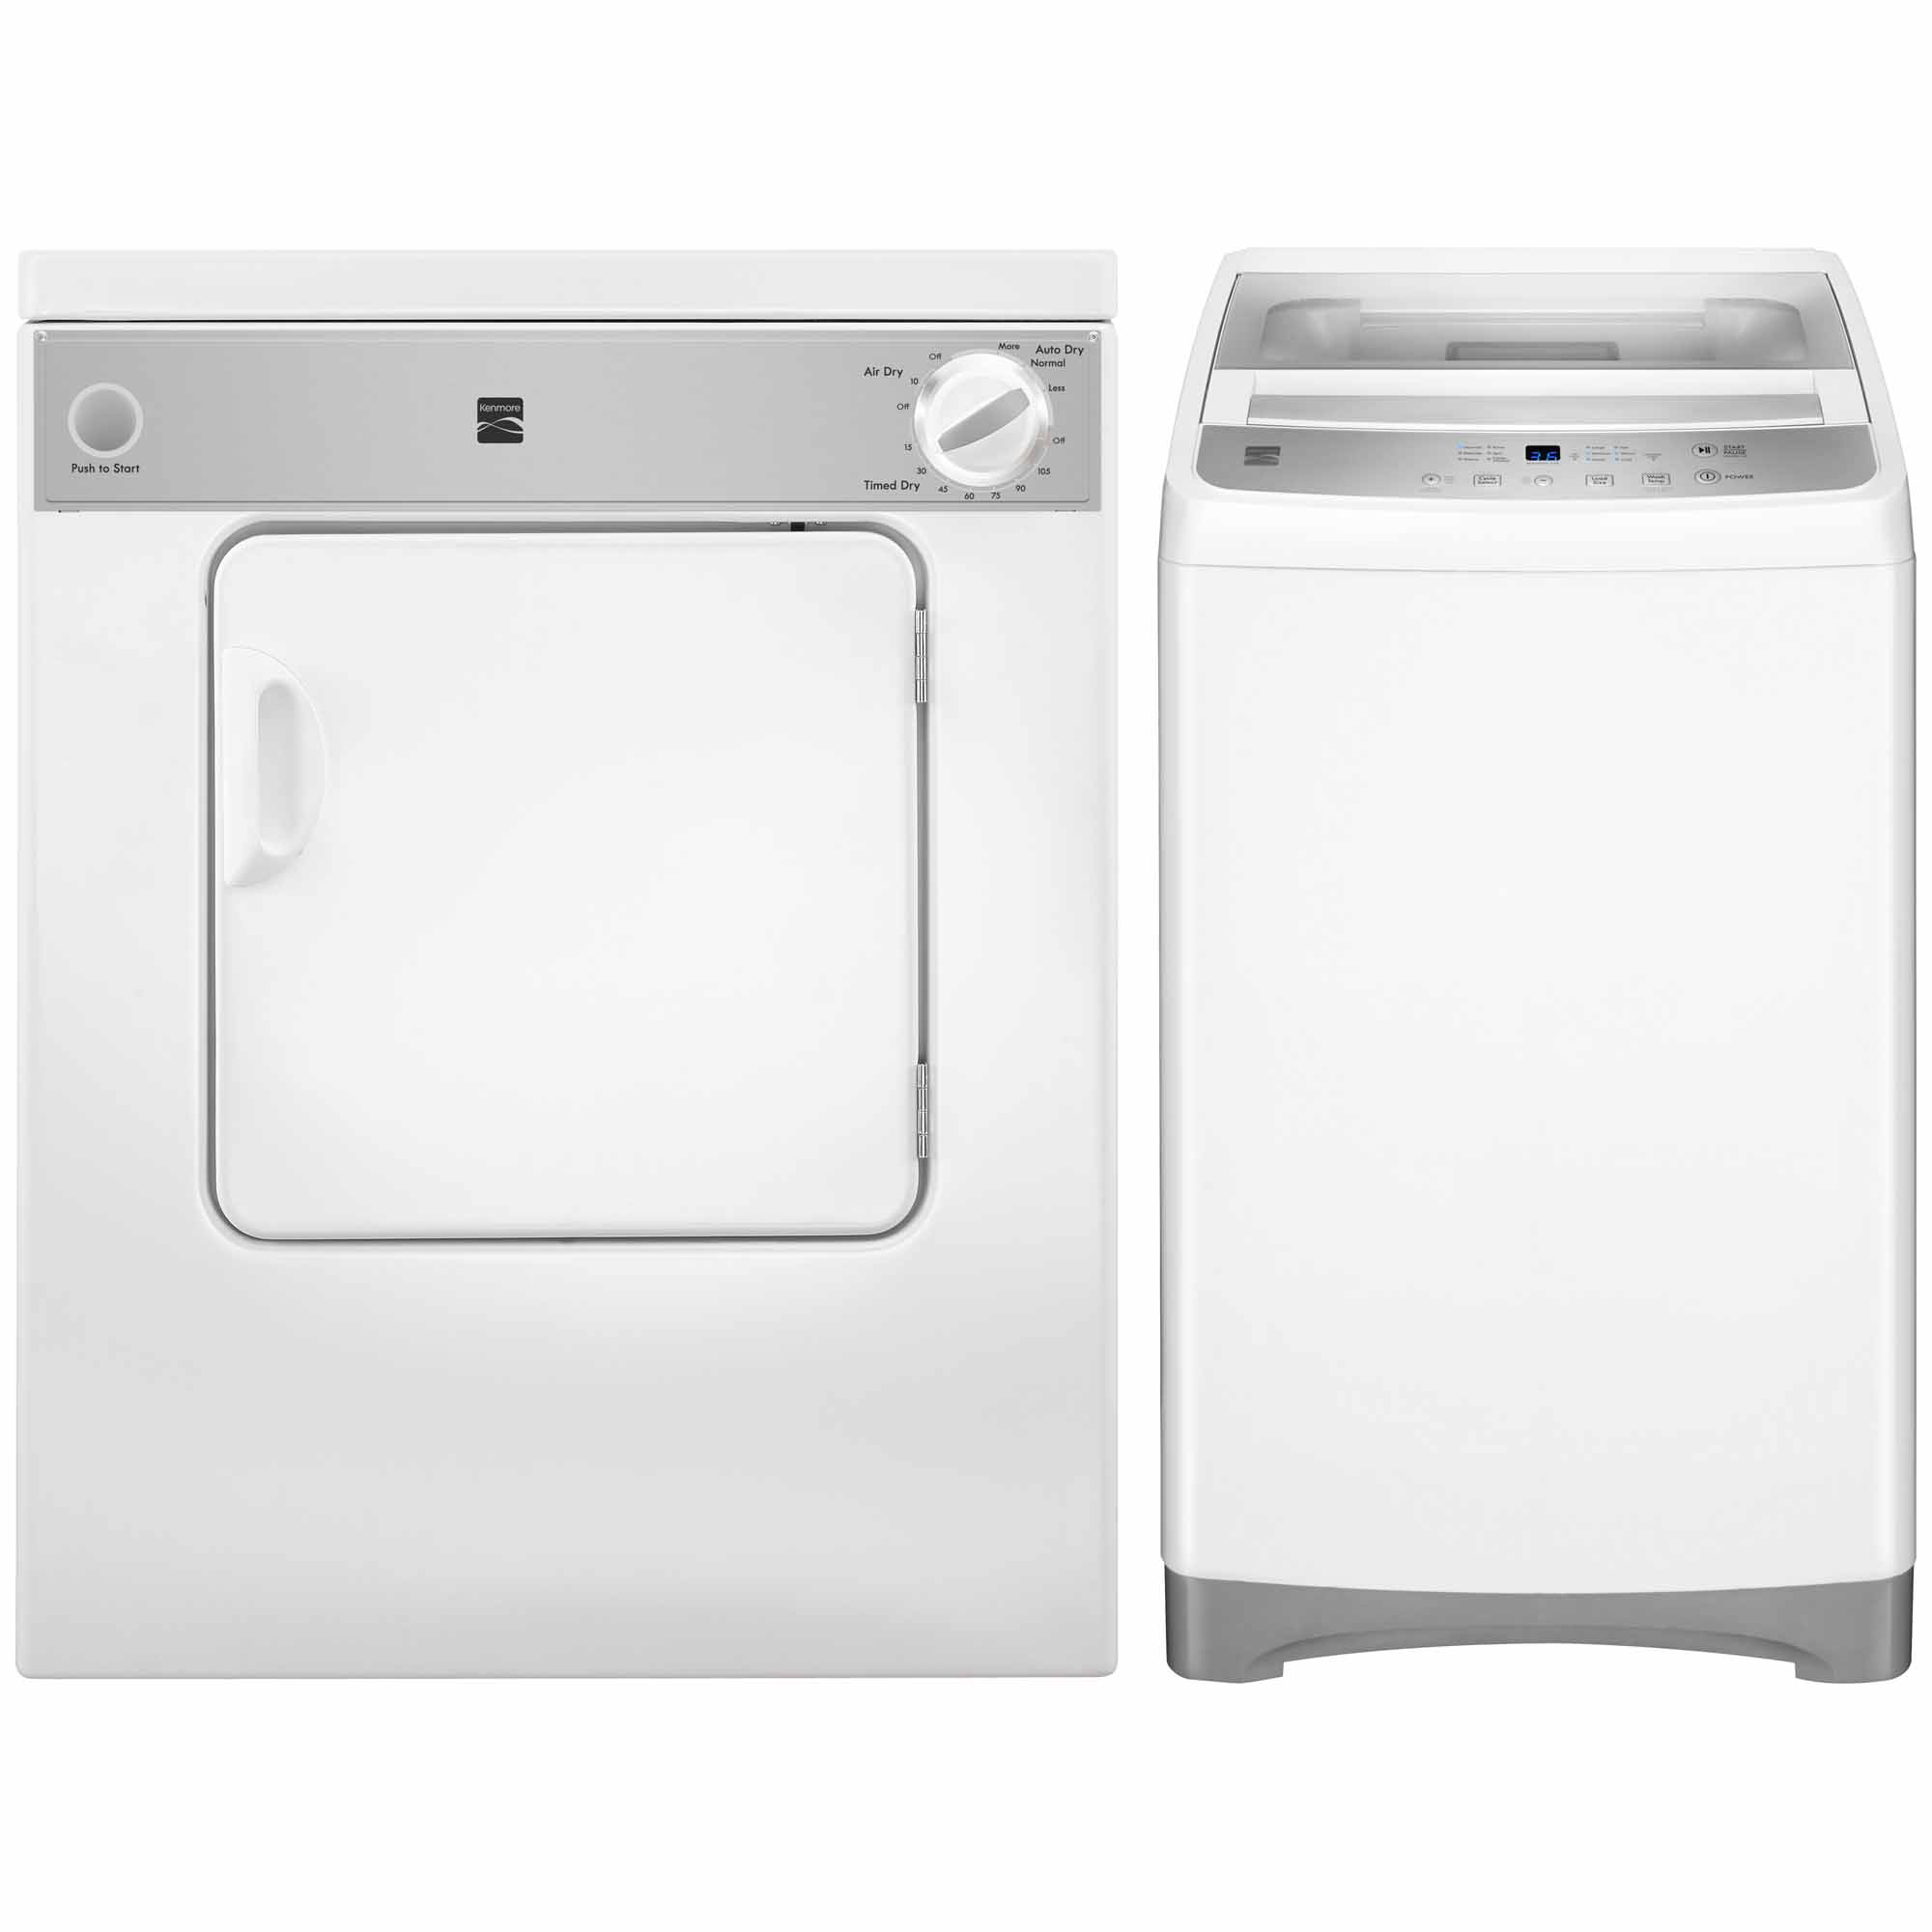 1.6 cu. ft. Top-Load Compact Washer w/ SS Wash Basket & 3.4 cu. ft. Compact Electric Dryer - White